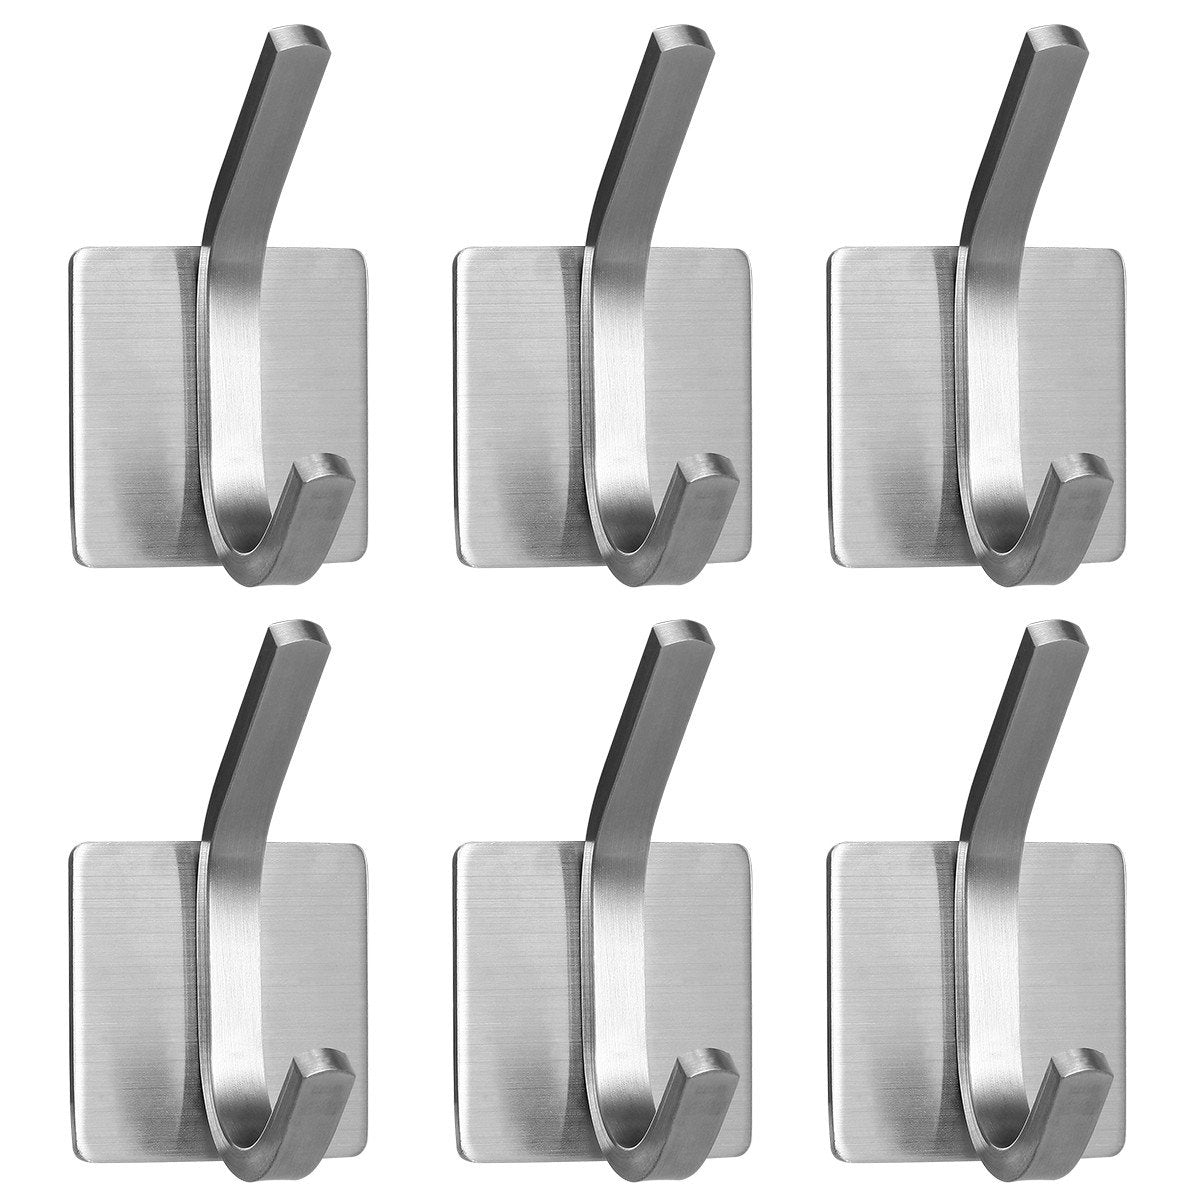 Self Adhesive Stainless Steel Hooks (6 pieces)